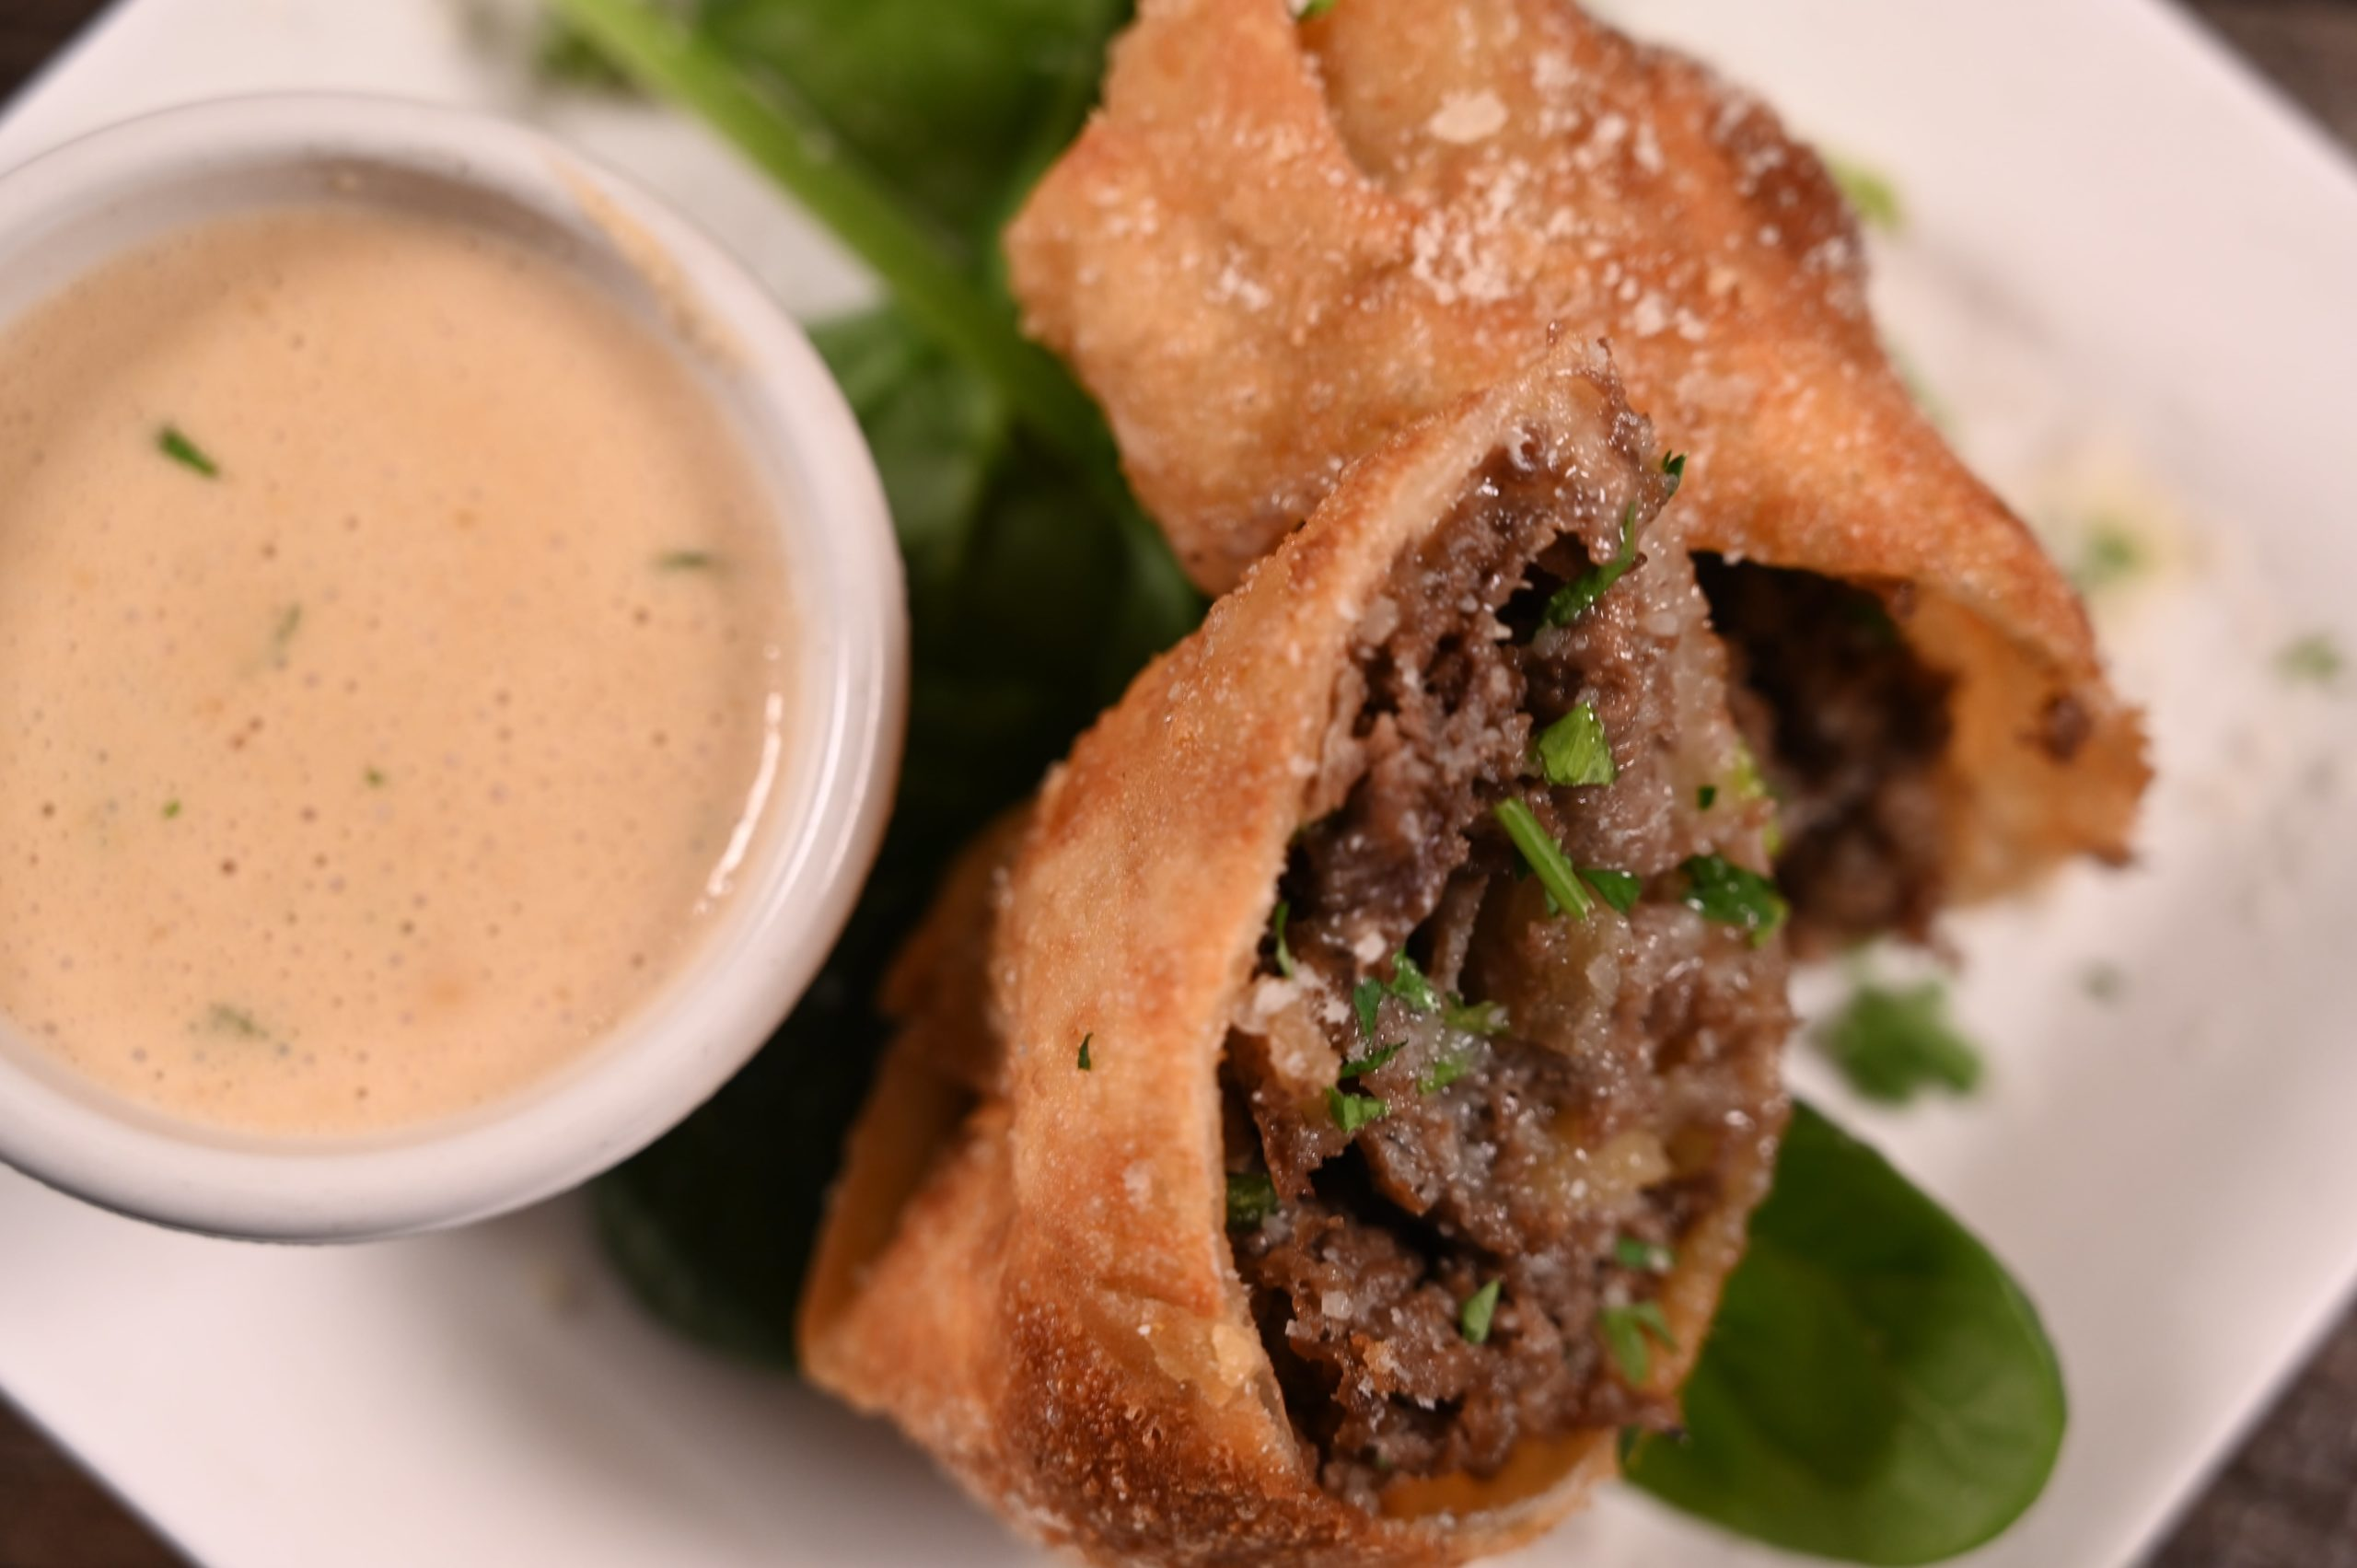 eggroll-Steak-and-Cheese-Caramelized-Onions